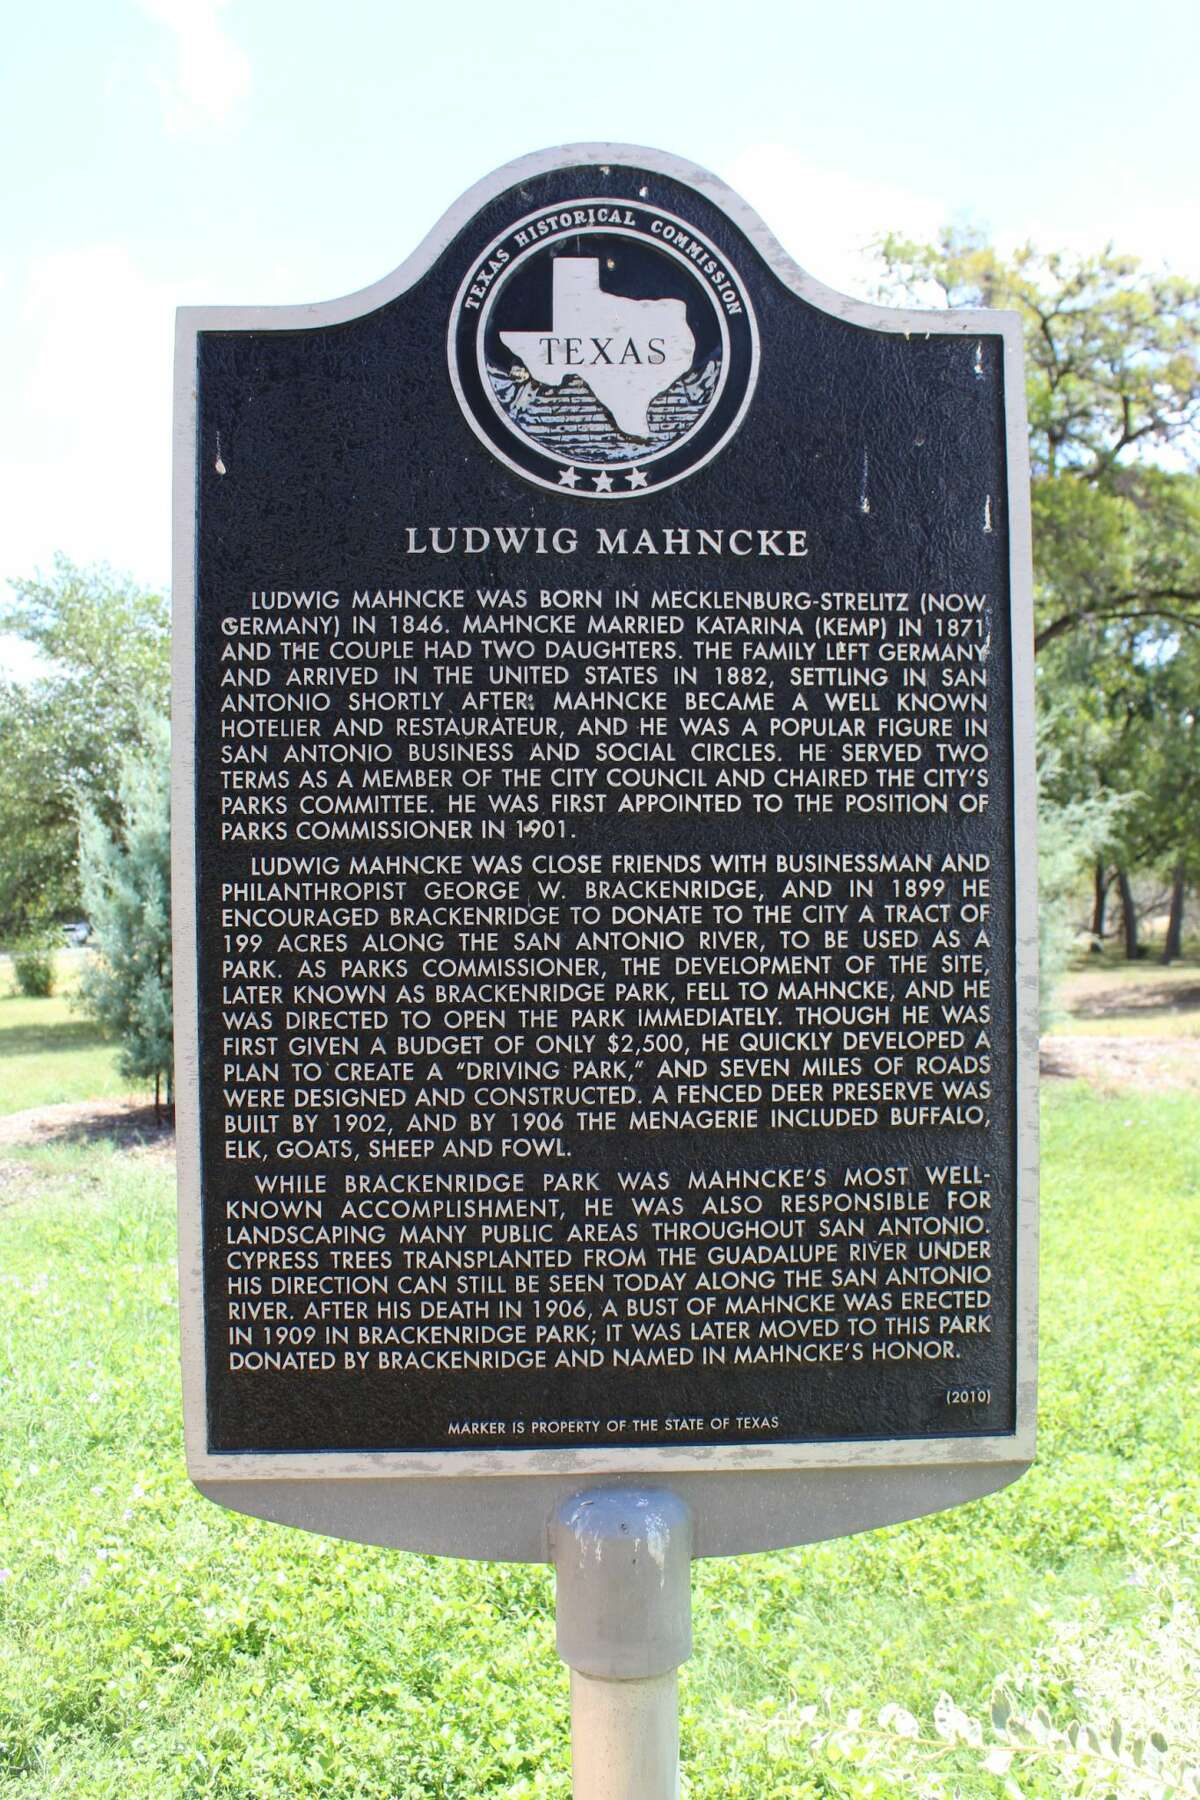 The midtown park was named in honor of Ludwig Mahncke, who served as San Antonio's park commissioner.